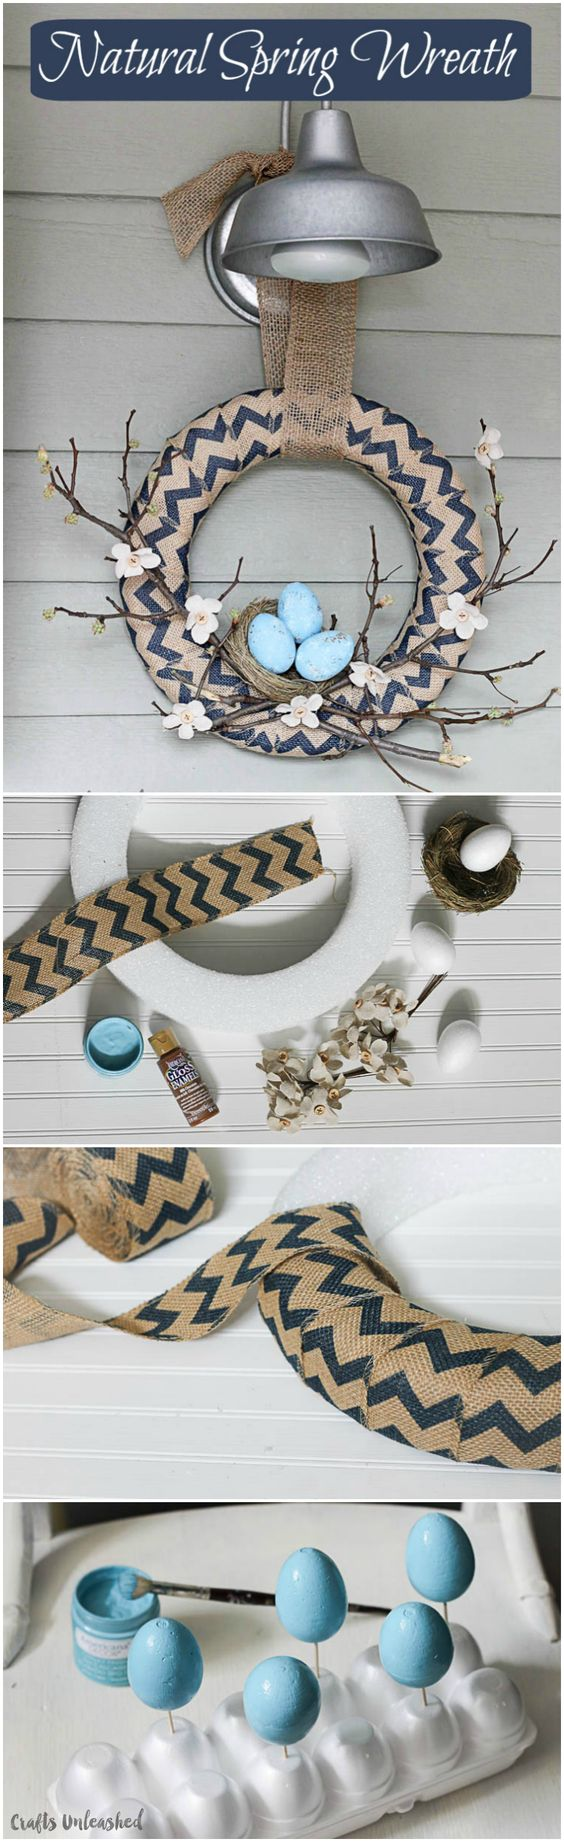 Spring Wreath with Bird Nest Accent.